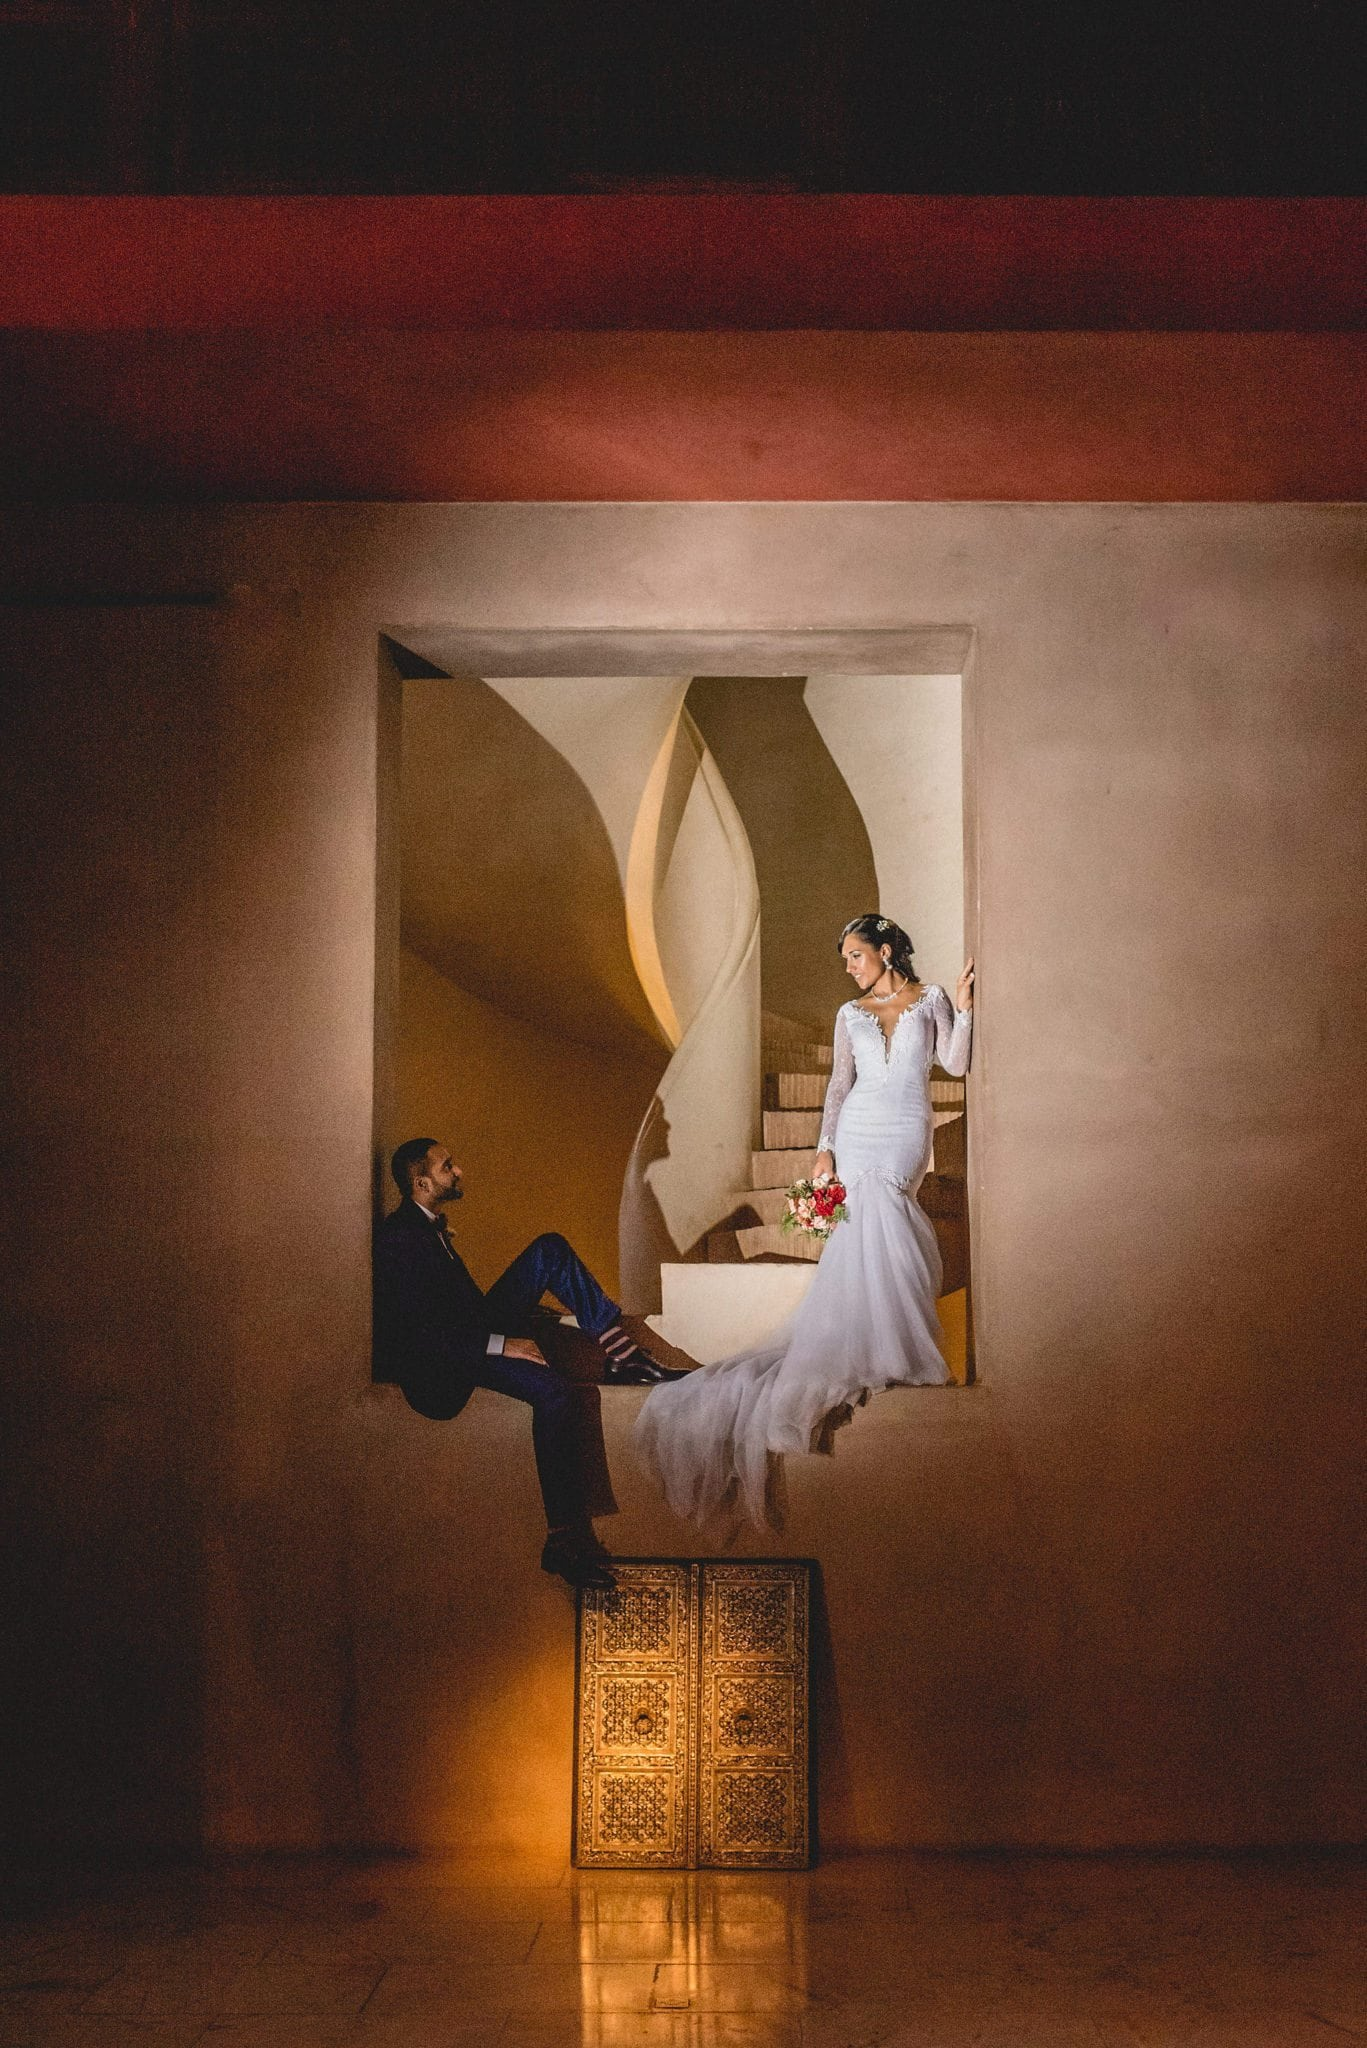 The bride and groom stand dramatically in one of the alcoves near the base of the Ksar Char Bagh staircase.